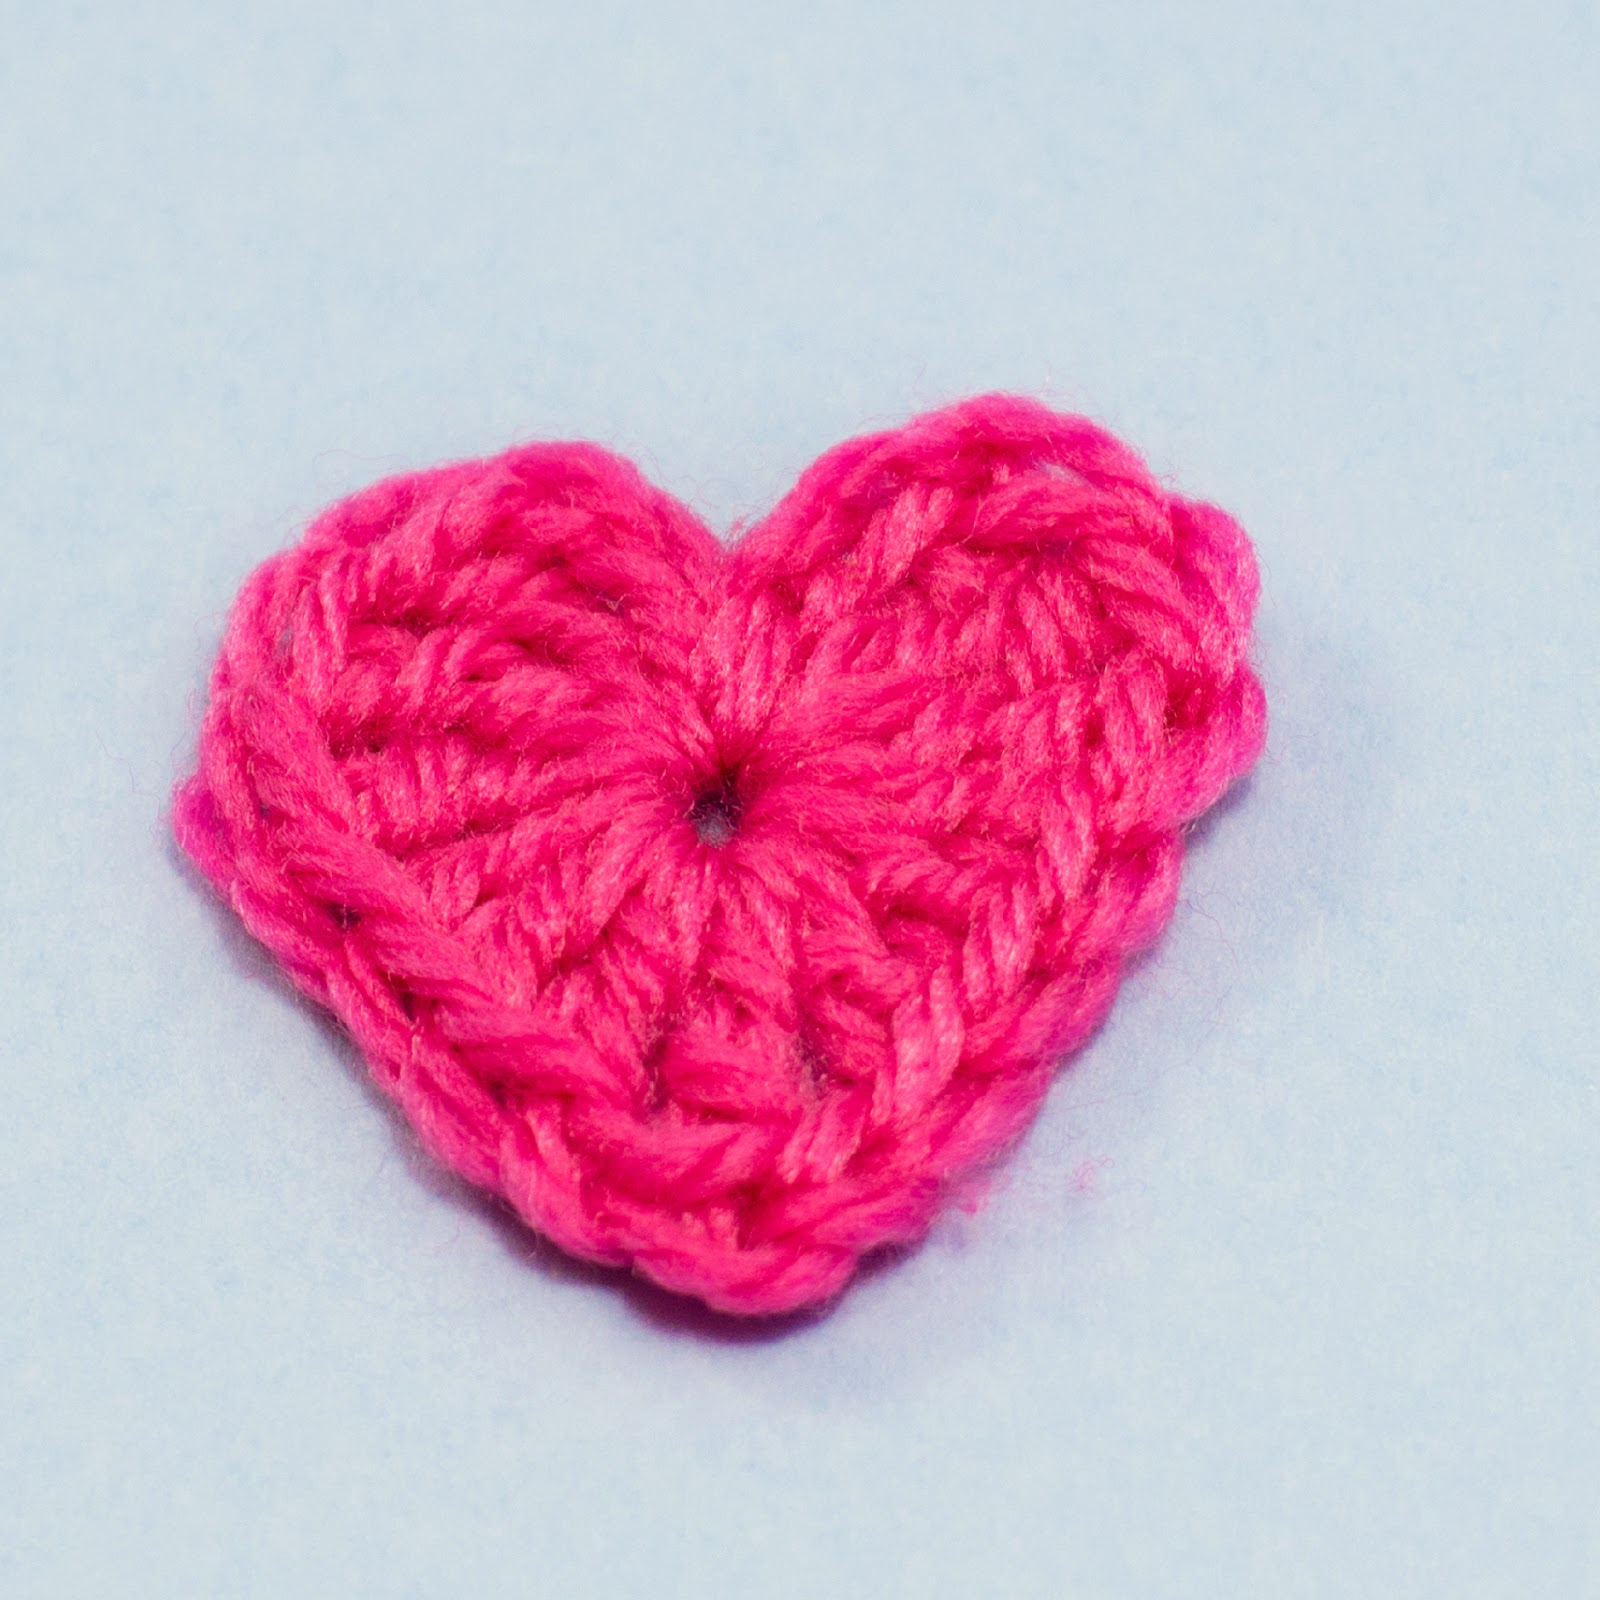 Crochet Heart : ... red heart free crochet patterns 755 x 679 363 kb jpeg red heart free